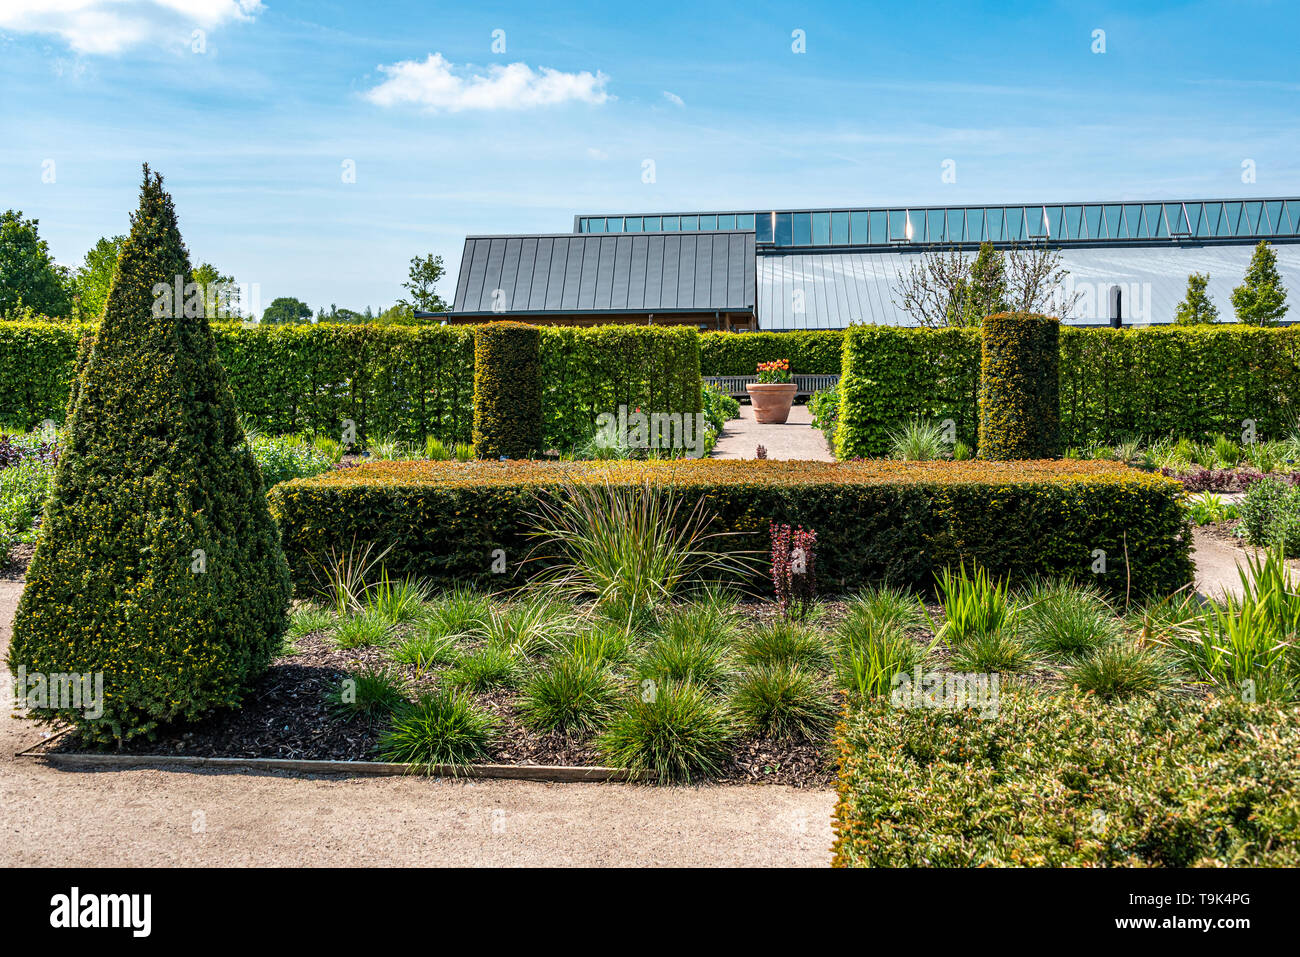 The modern country garden at RHS Hyde Hall  in Essex.Displaying some formal topiary and hedging. - Stock Image